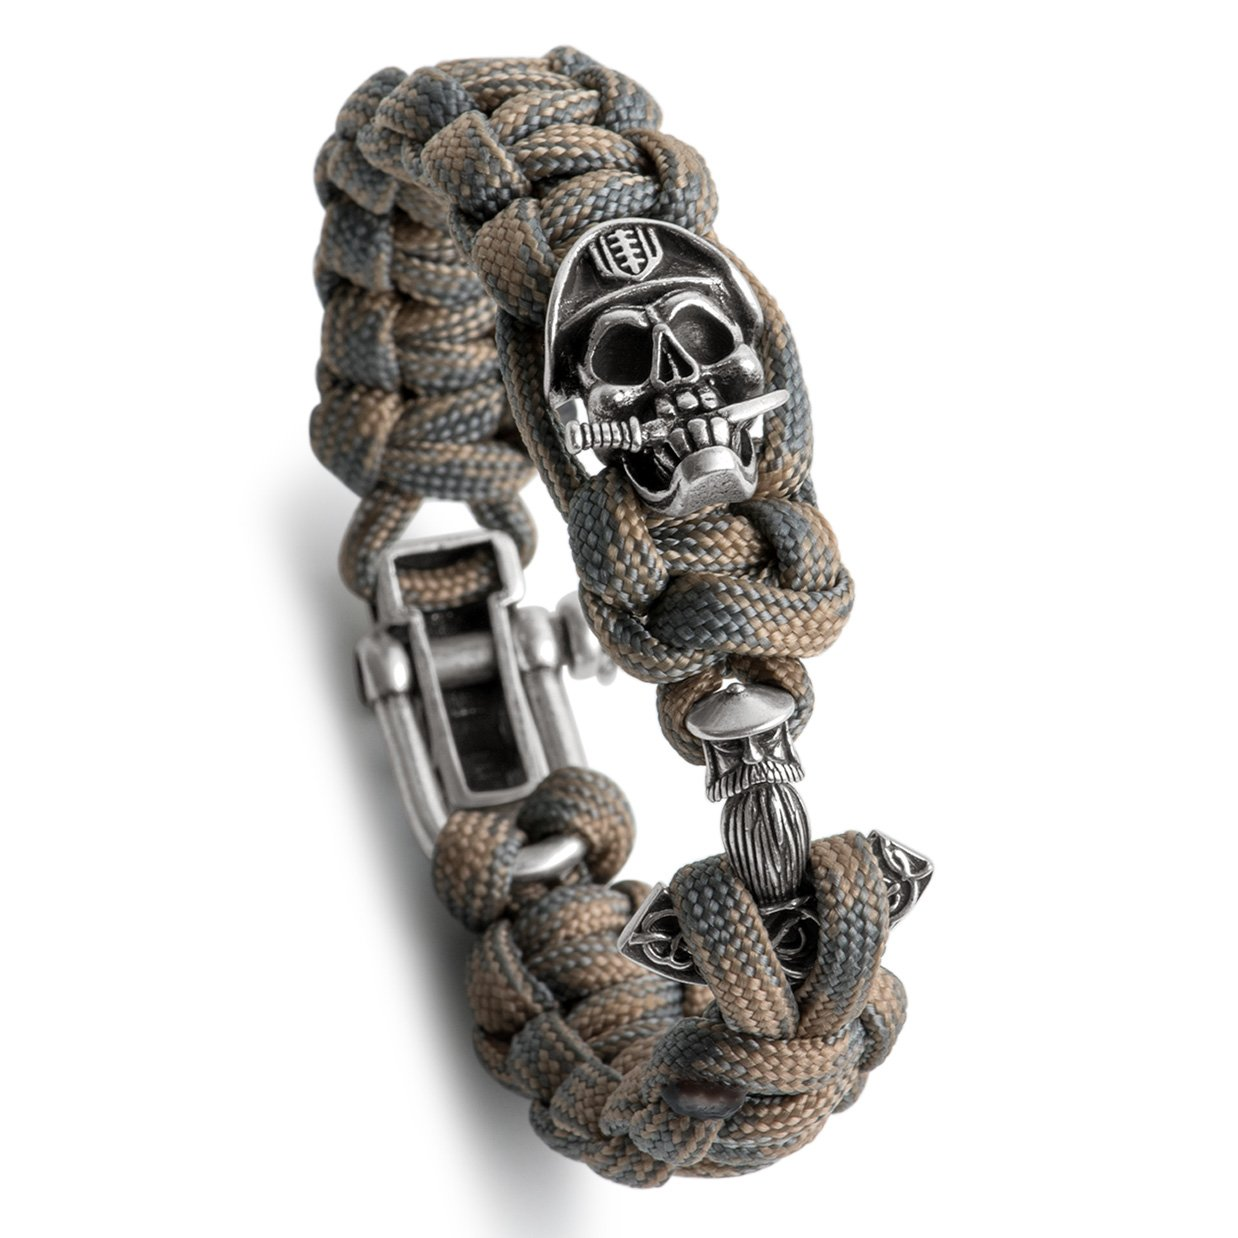 Kayder Skull Series Paracord Bracelet Set with Adjustable D Shackle, Personalized Fashion Jewelry Gift